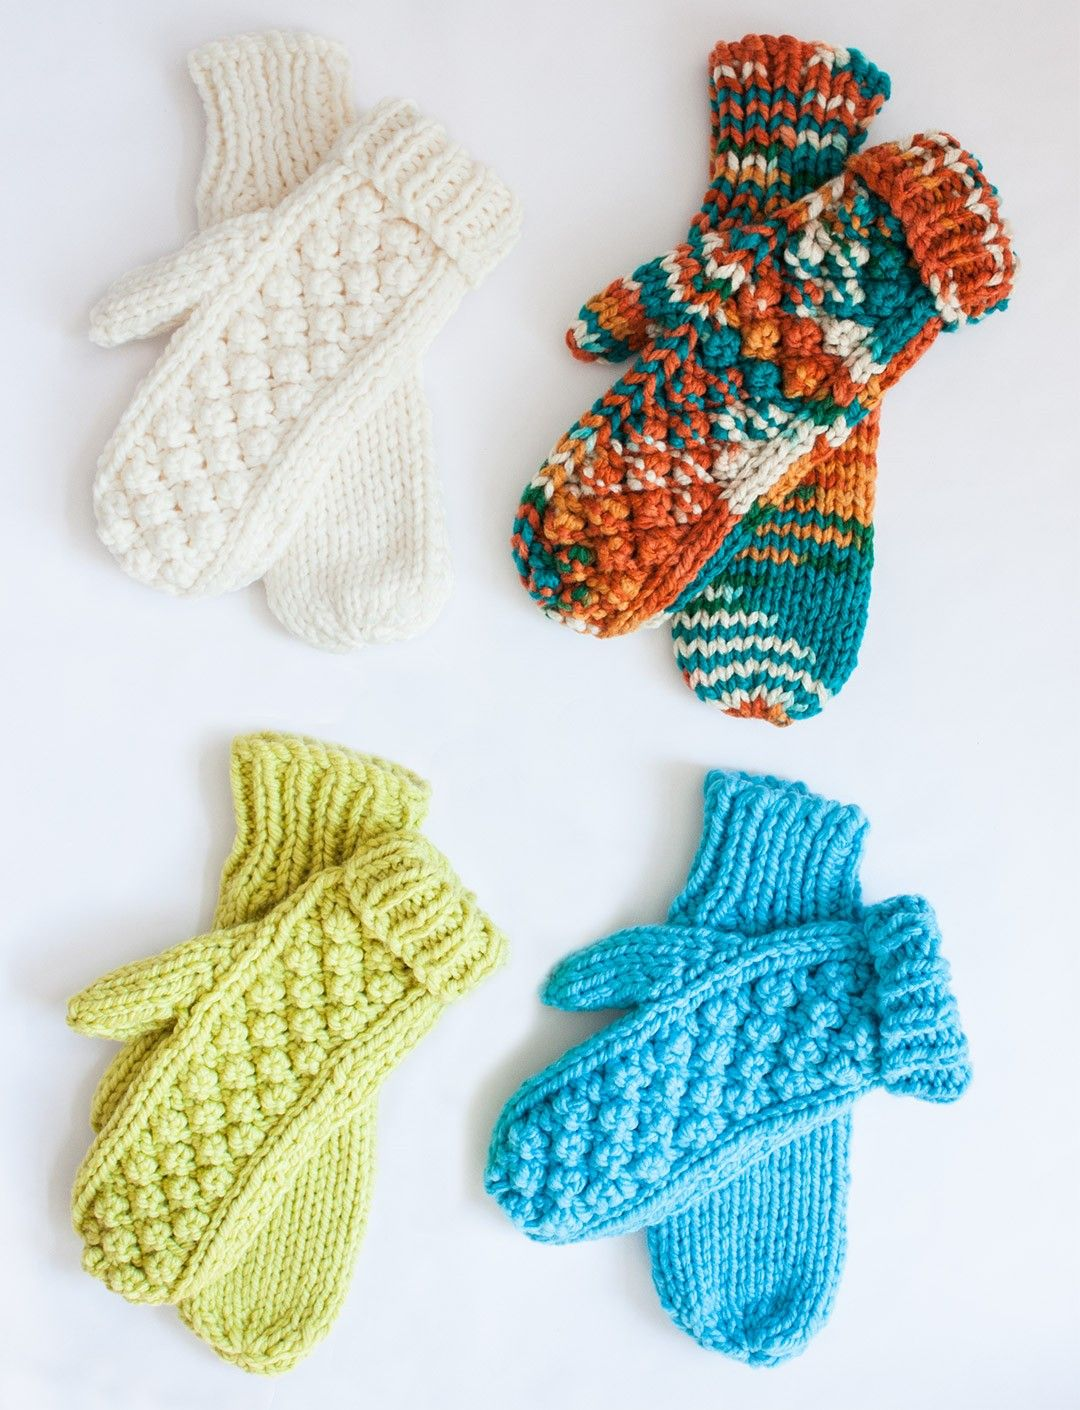 Yarnspirations bernat chill chaser mittens patterns yarnspirations bernat chill chaser mittens patterns yarnspirations bankloansurffo Choice Image